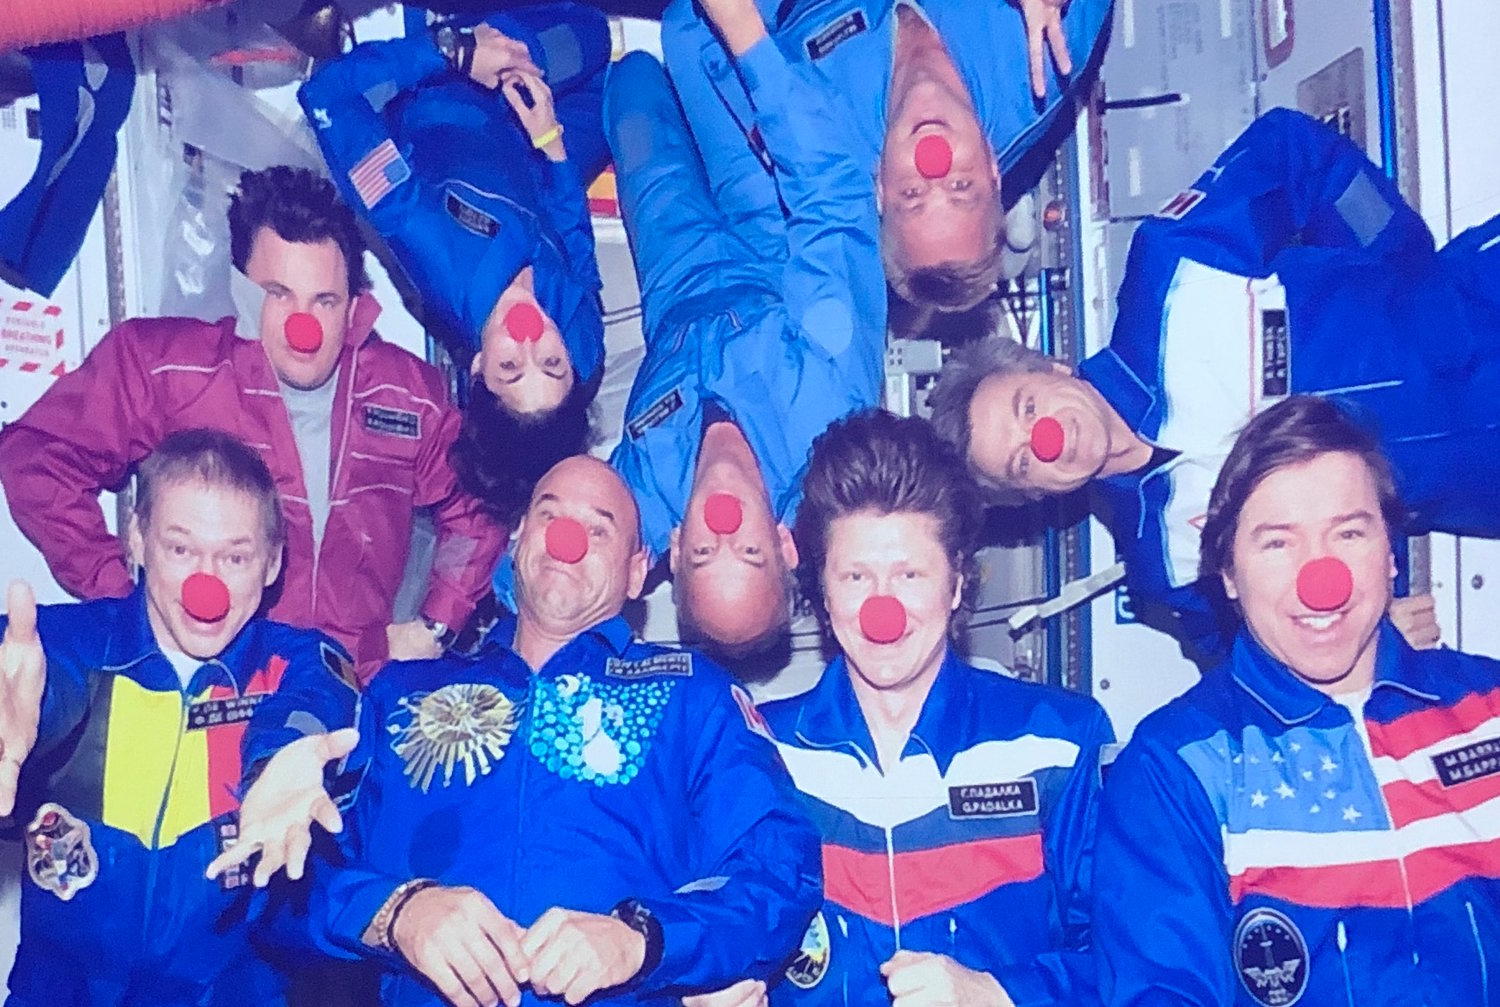 The crew aboard the International Space Station still enjoys leisure time. Stott, second from left at top, sported a clown nose along with her fellow astronauts. Members come from 15 different countries, she said, some of which are identifiable by the flags on their uniforms.